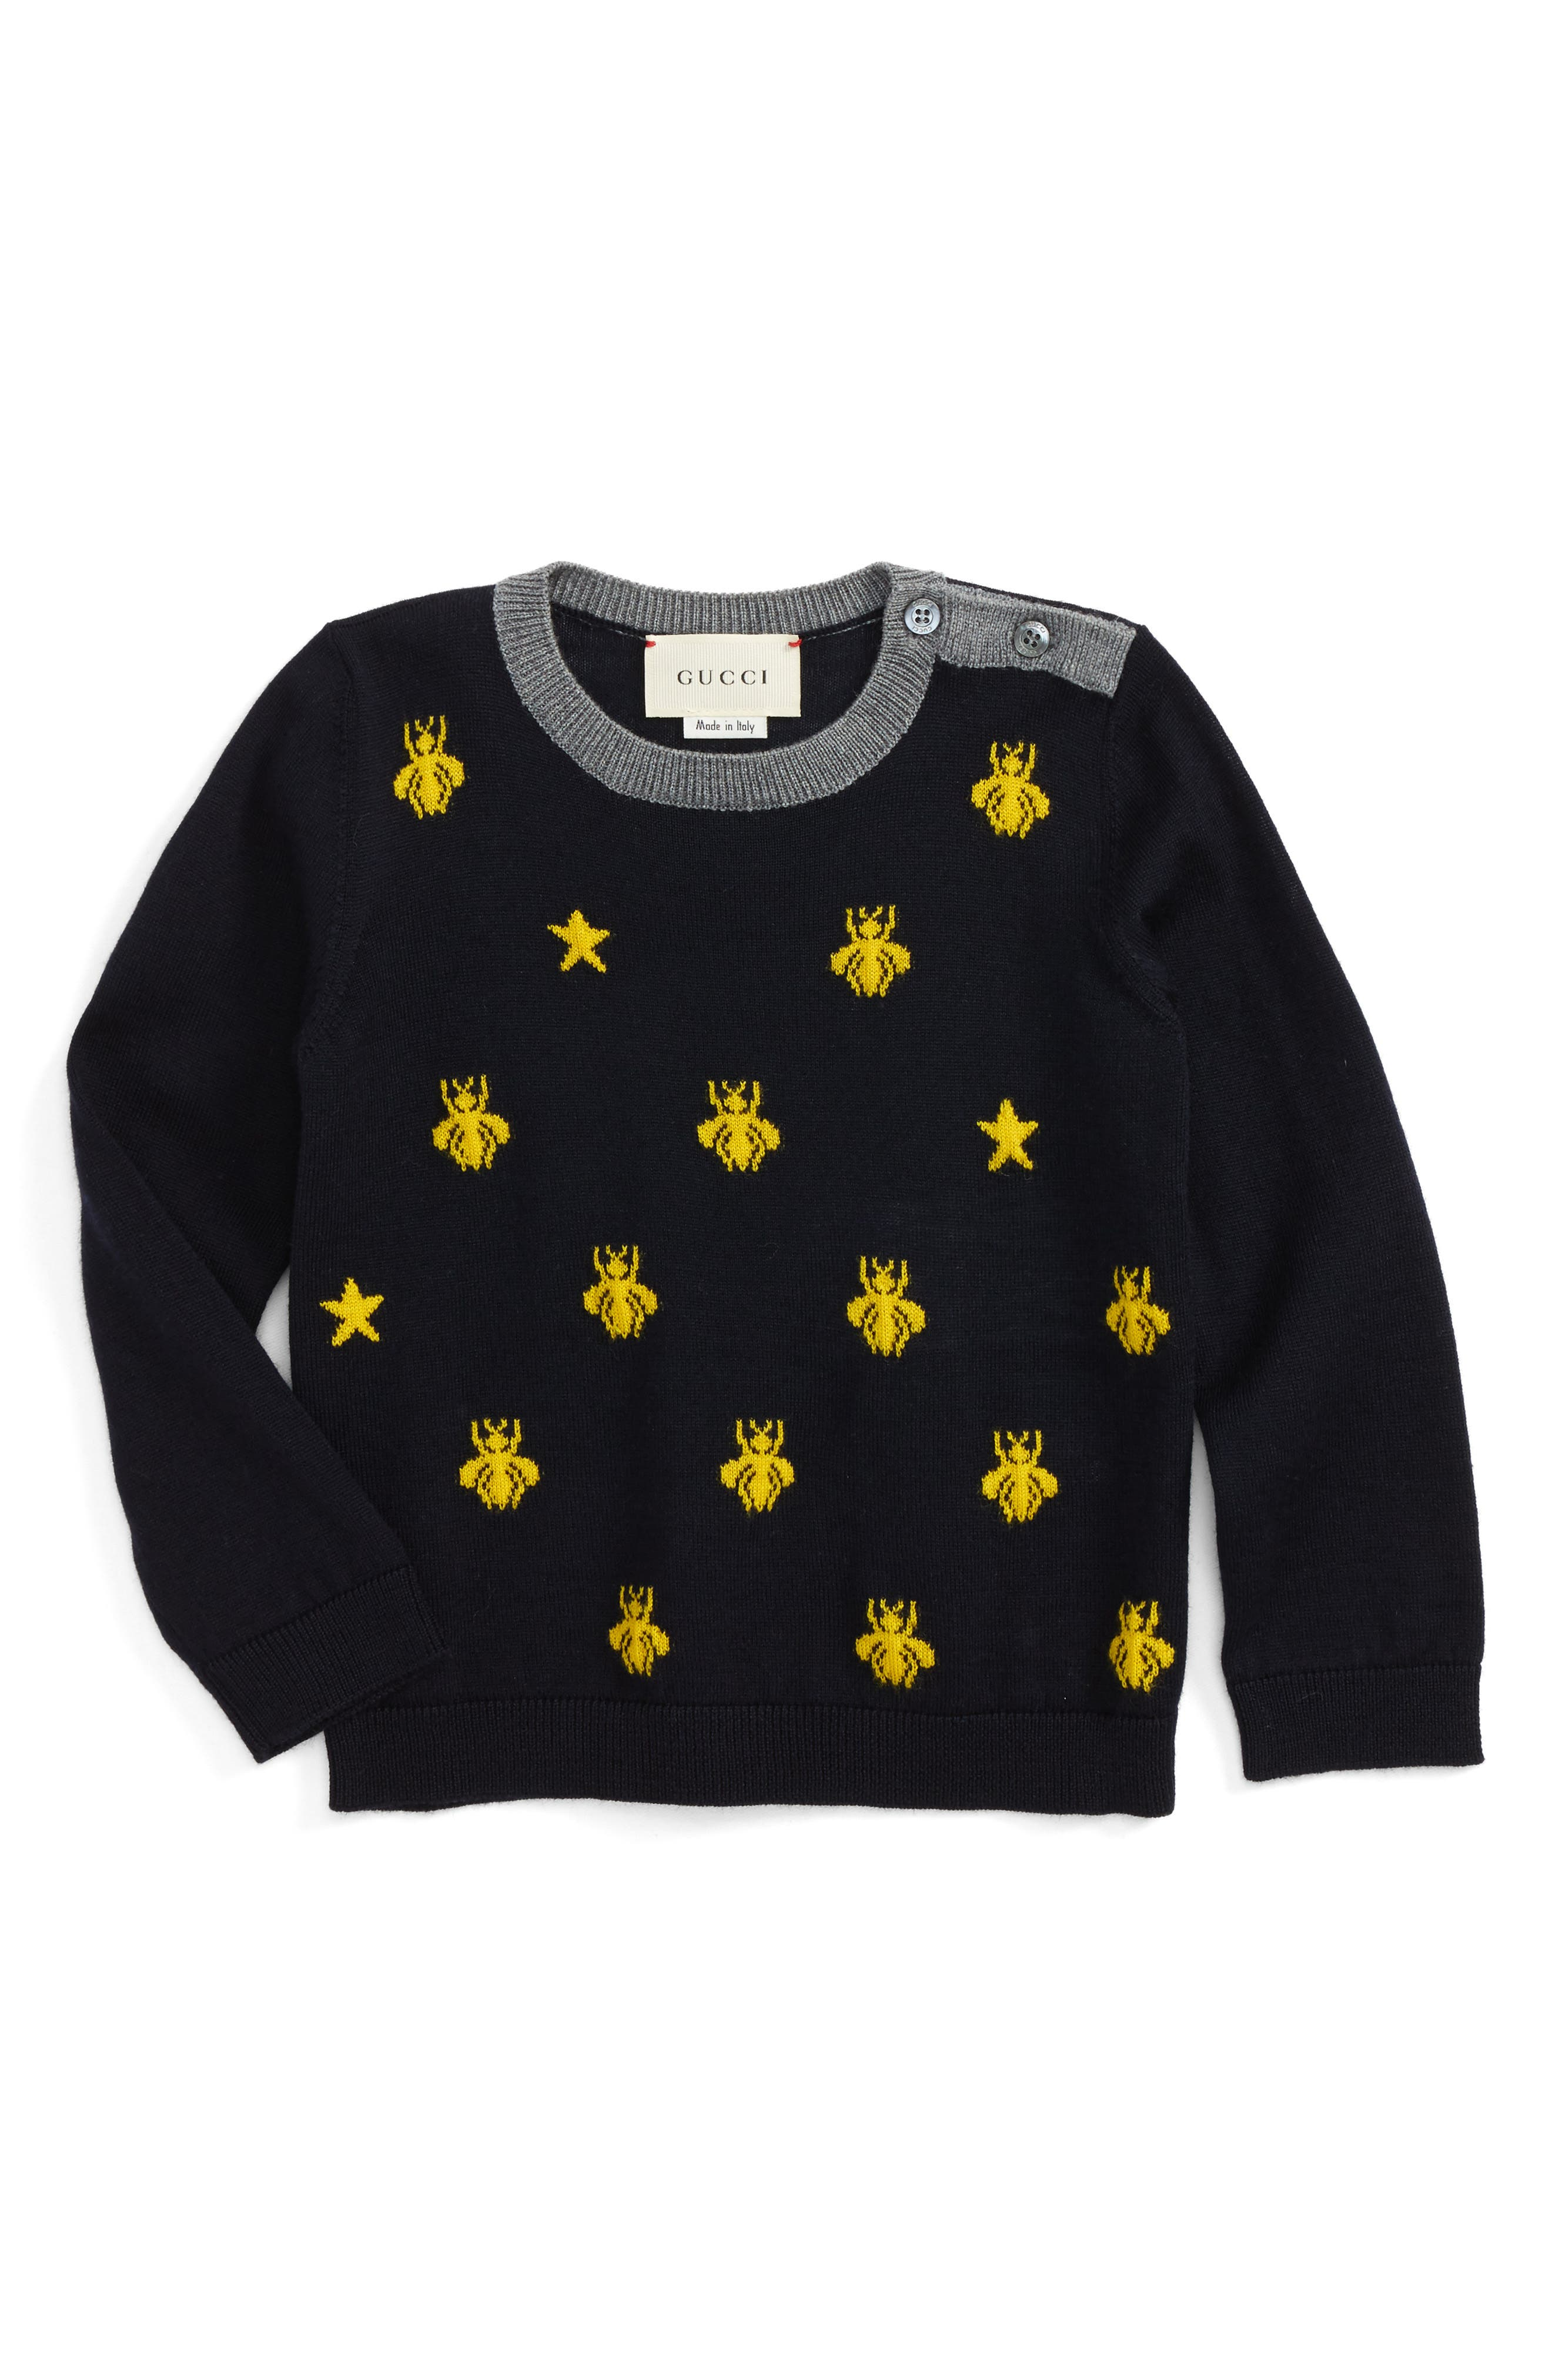 Alternate Image 1 Selected - Gucci Zest Bee & Star Intarsia Wool Sweater (Baby)